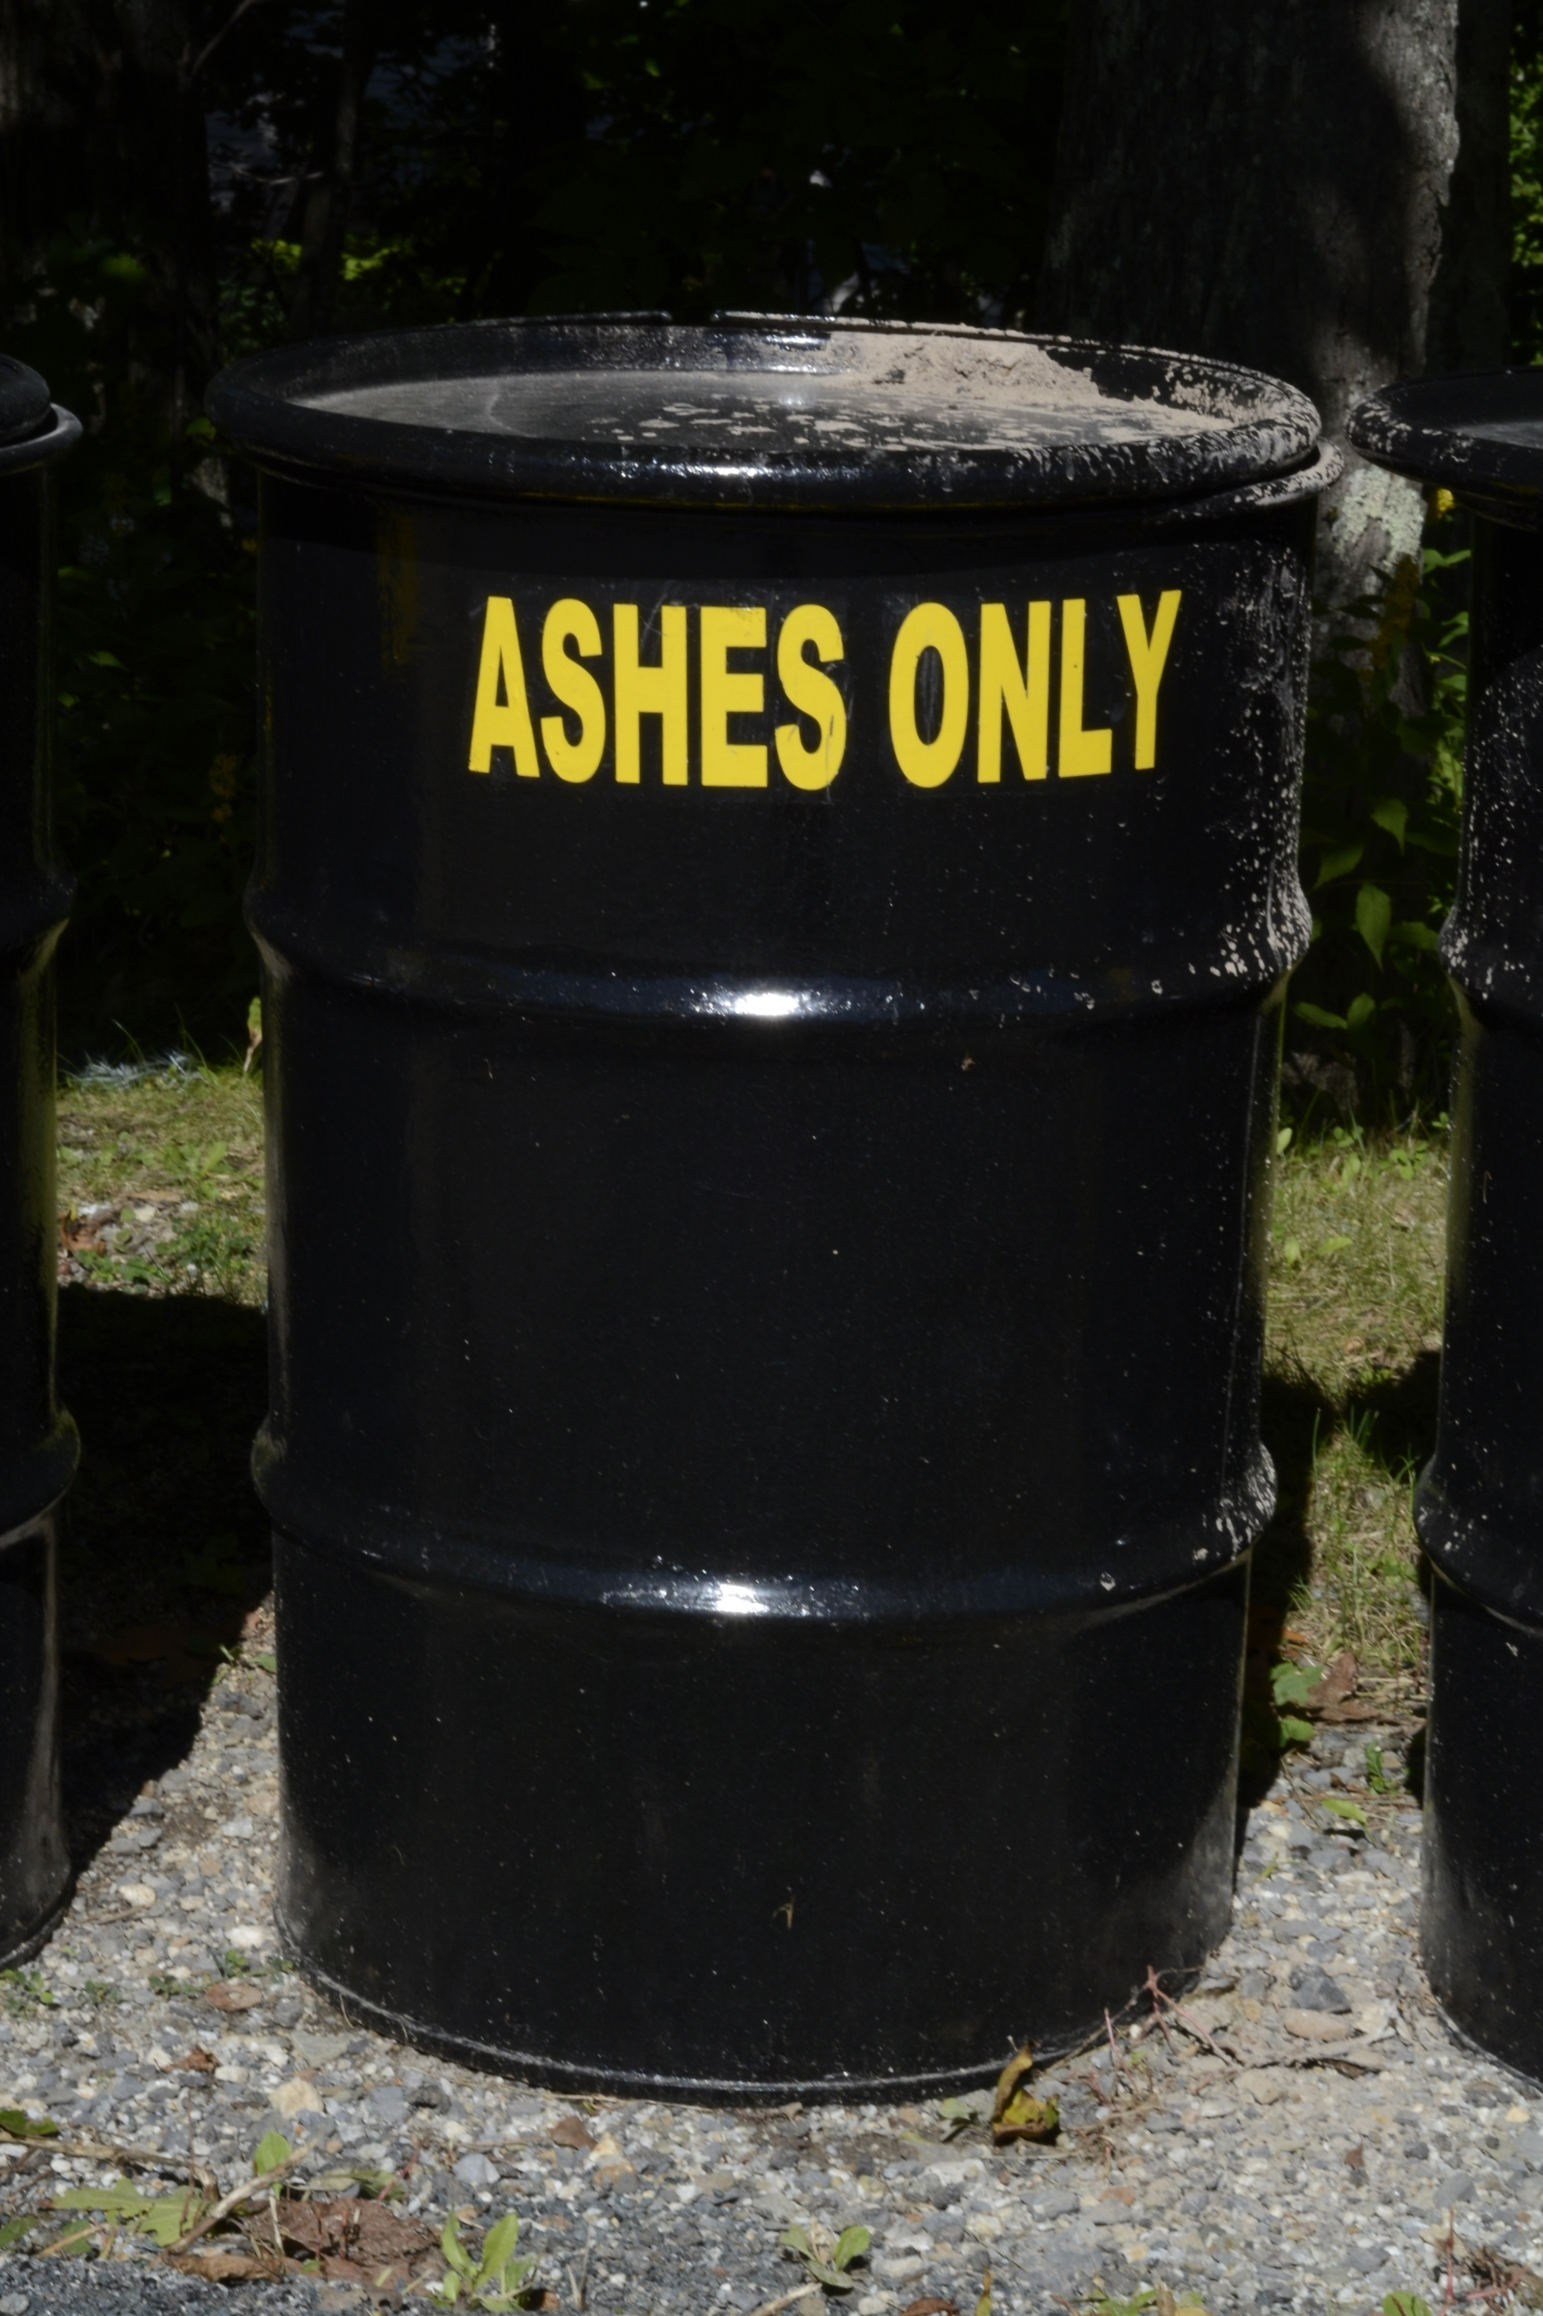 """Even """"cold"""" ashes from fireplaces should be place in the black ash barrels provided at the two trash compactors on the mountain. Coals covered in ash can remain dangerously hot for days."""